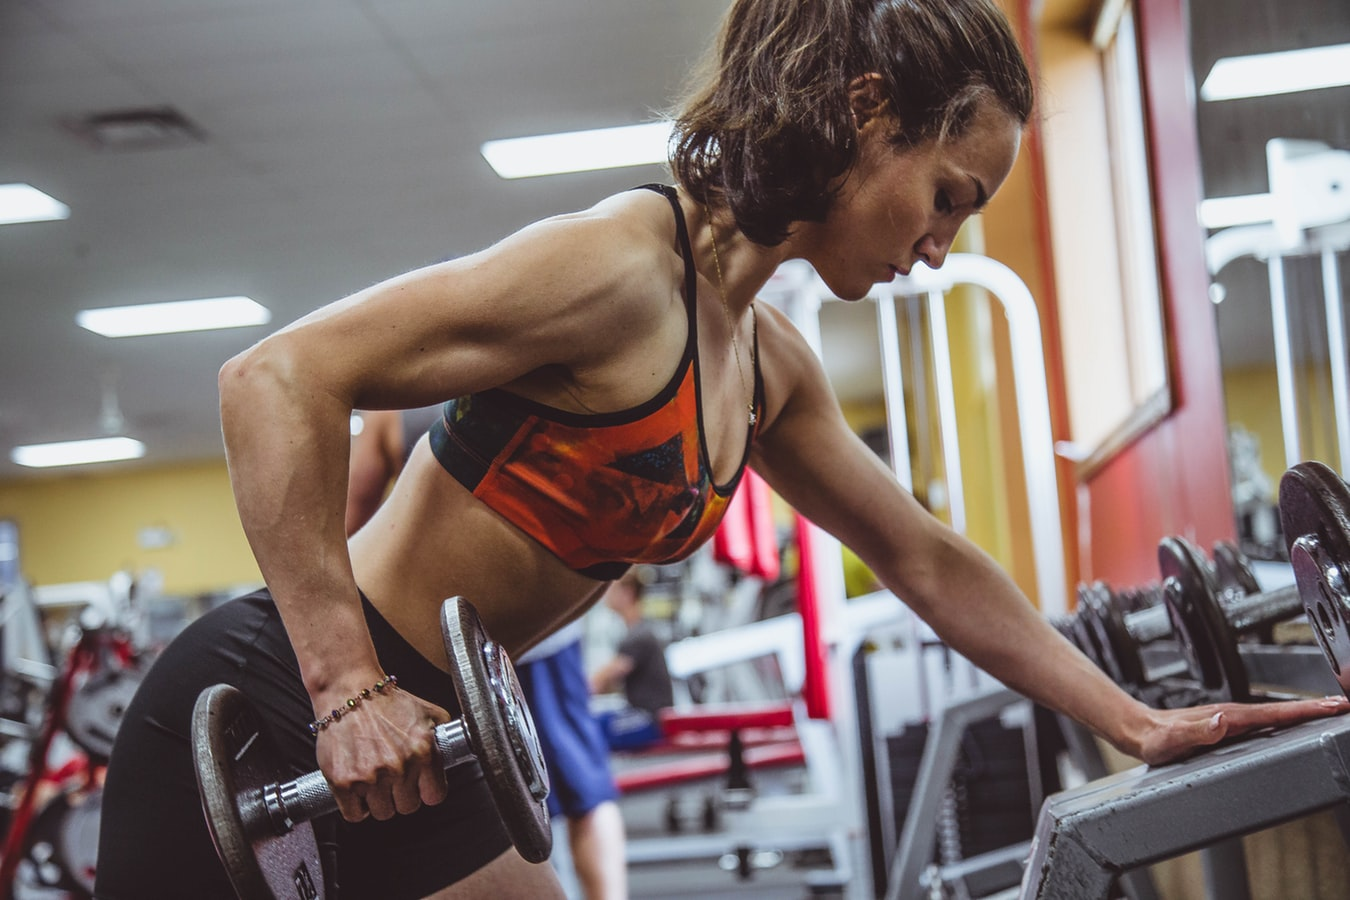 image of woman lifting weights